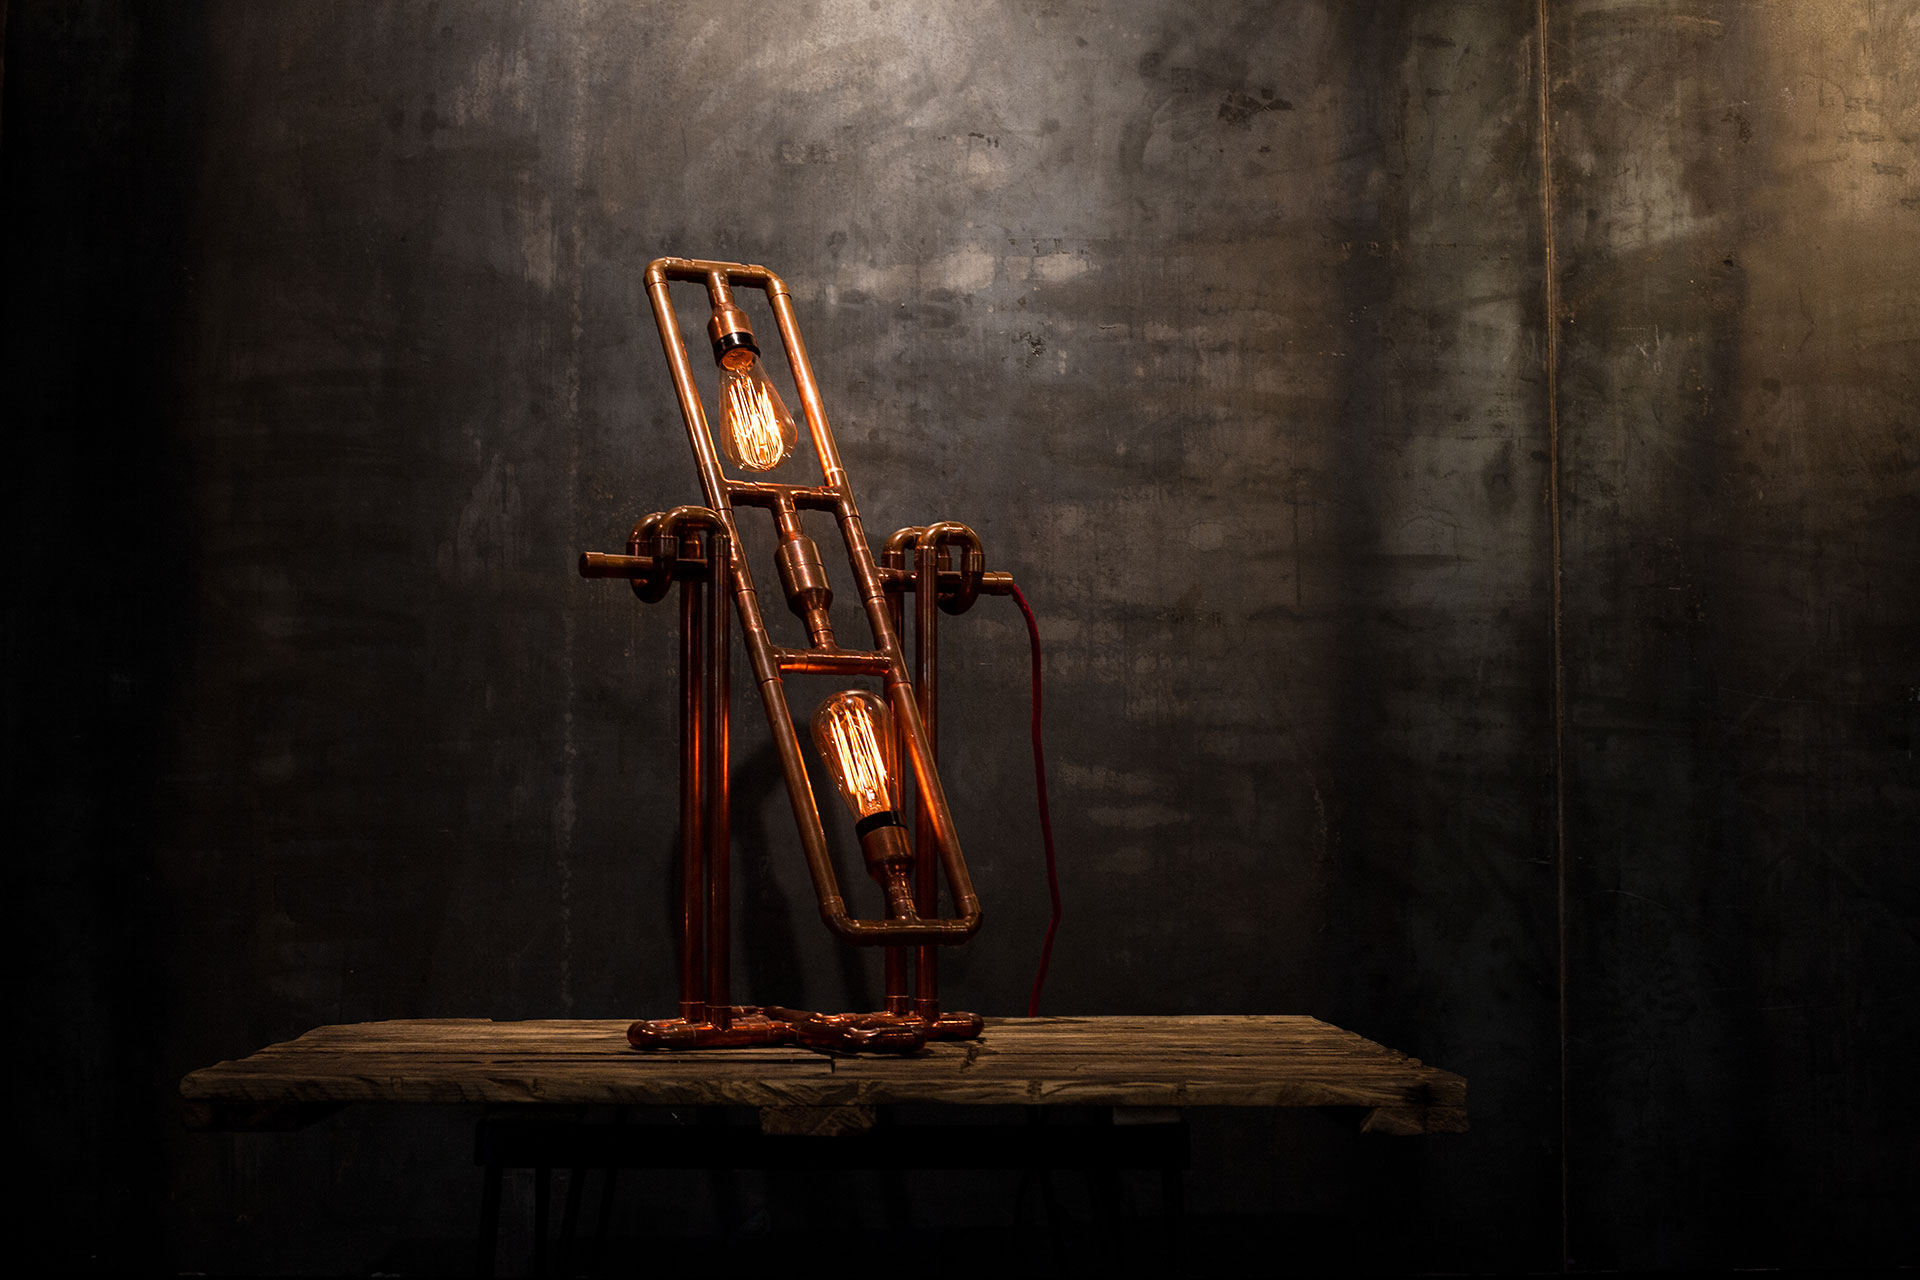 Copper pipes table lamp with vintage Edison bulbs in loft style interior